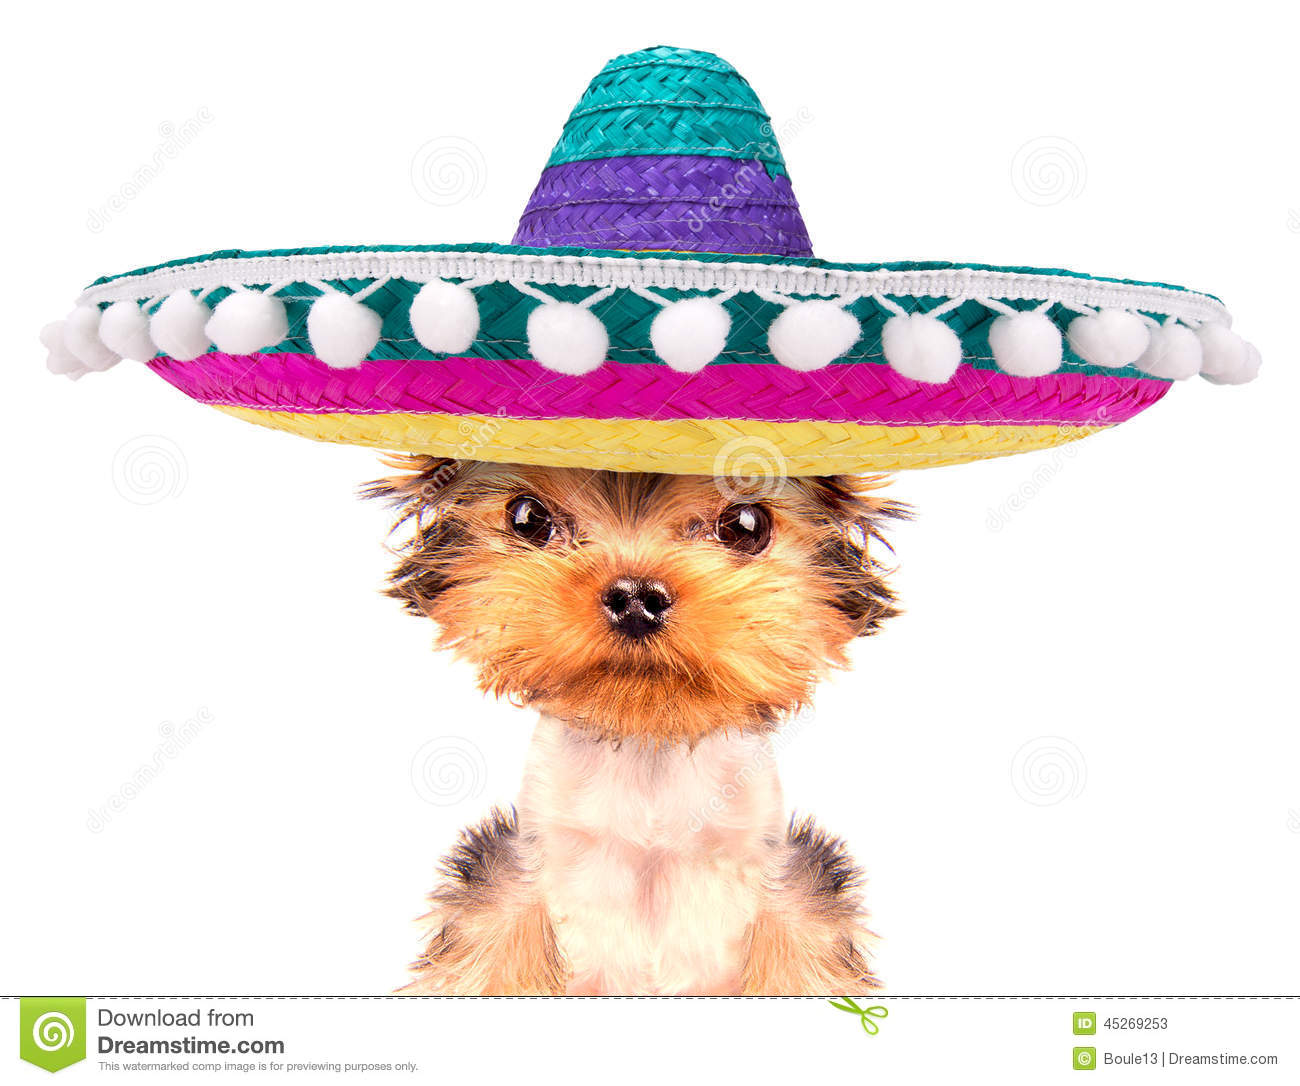 Cute puppy dog wearing a mexican hat on a white background.